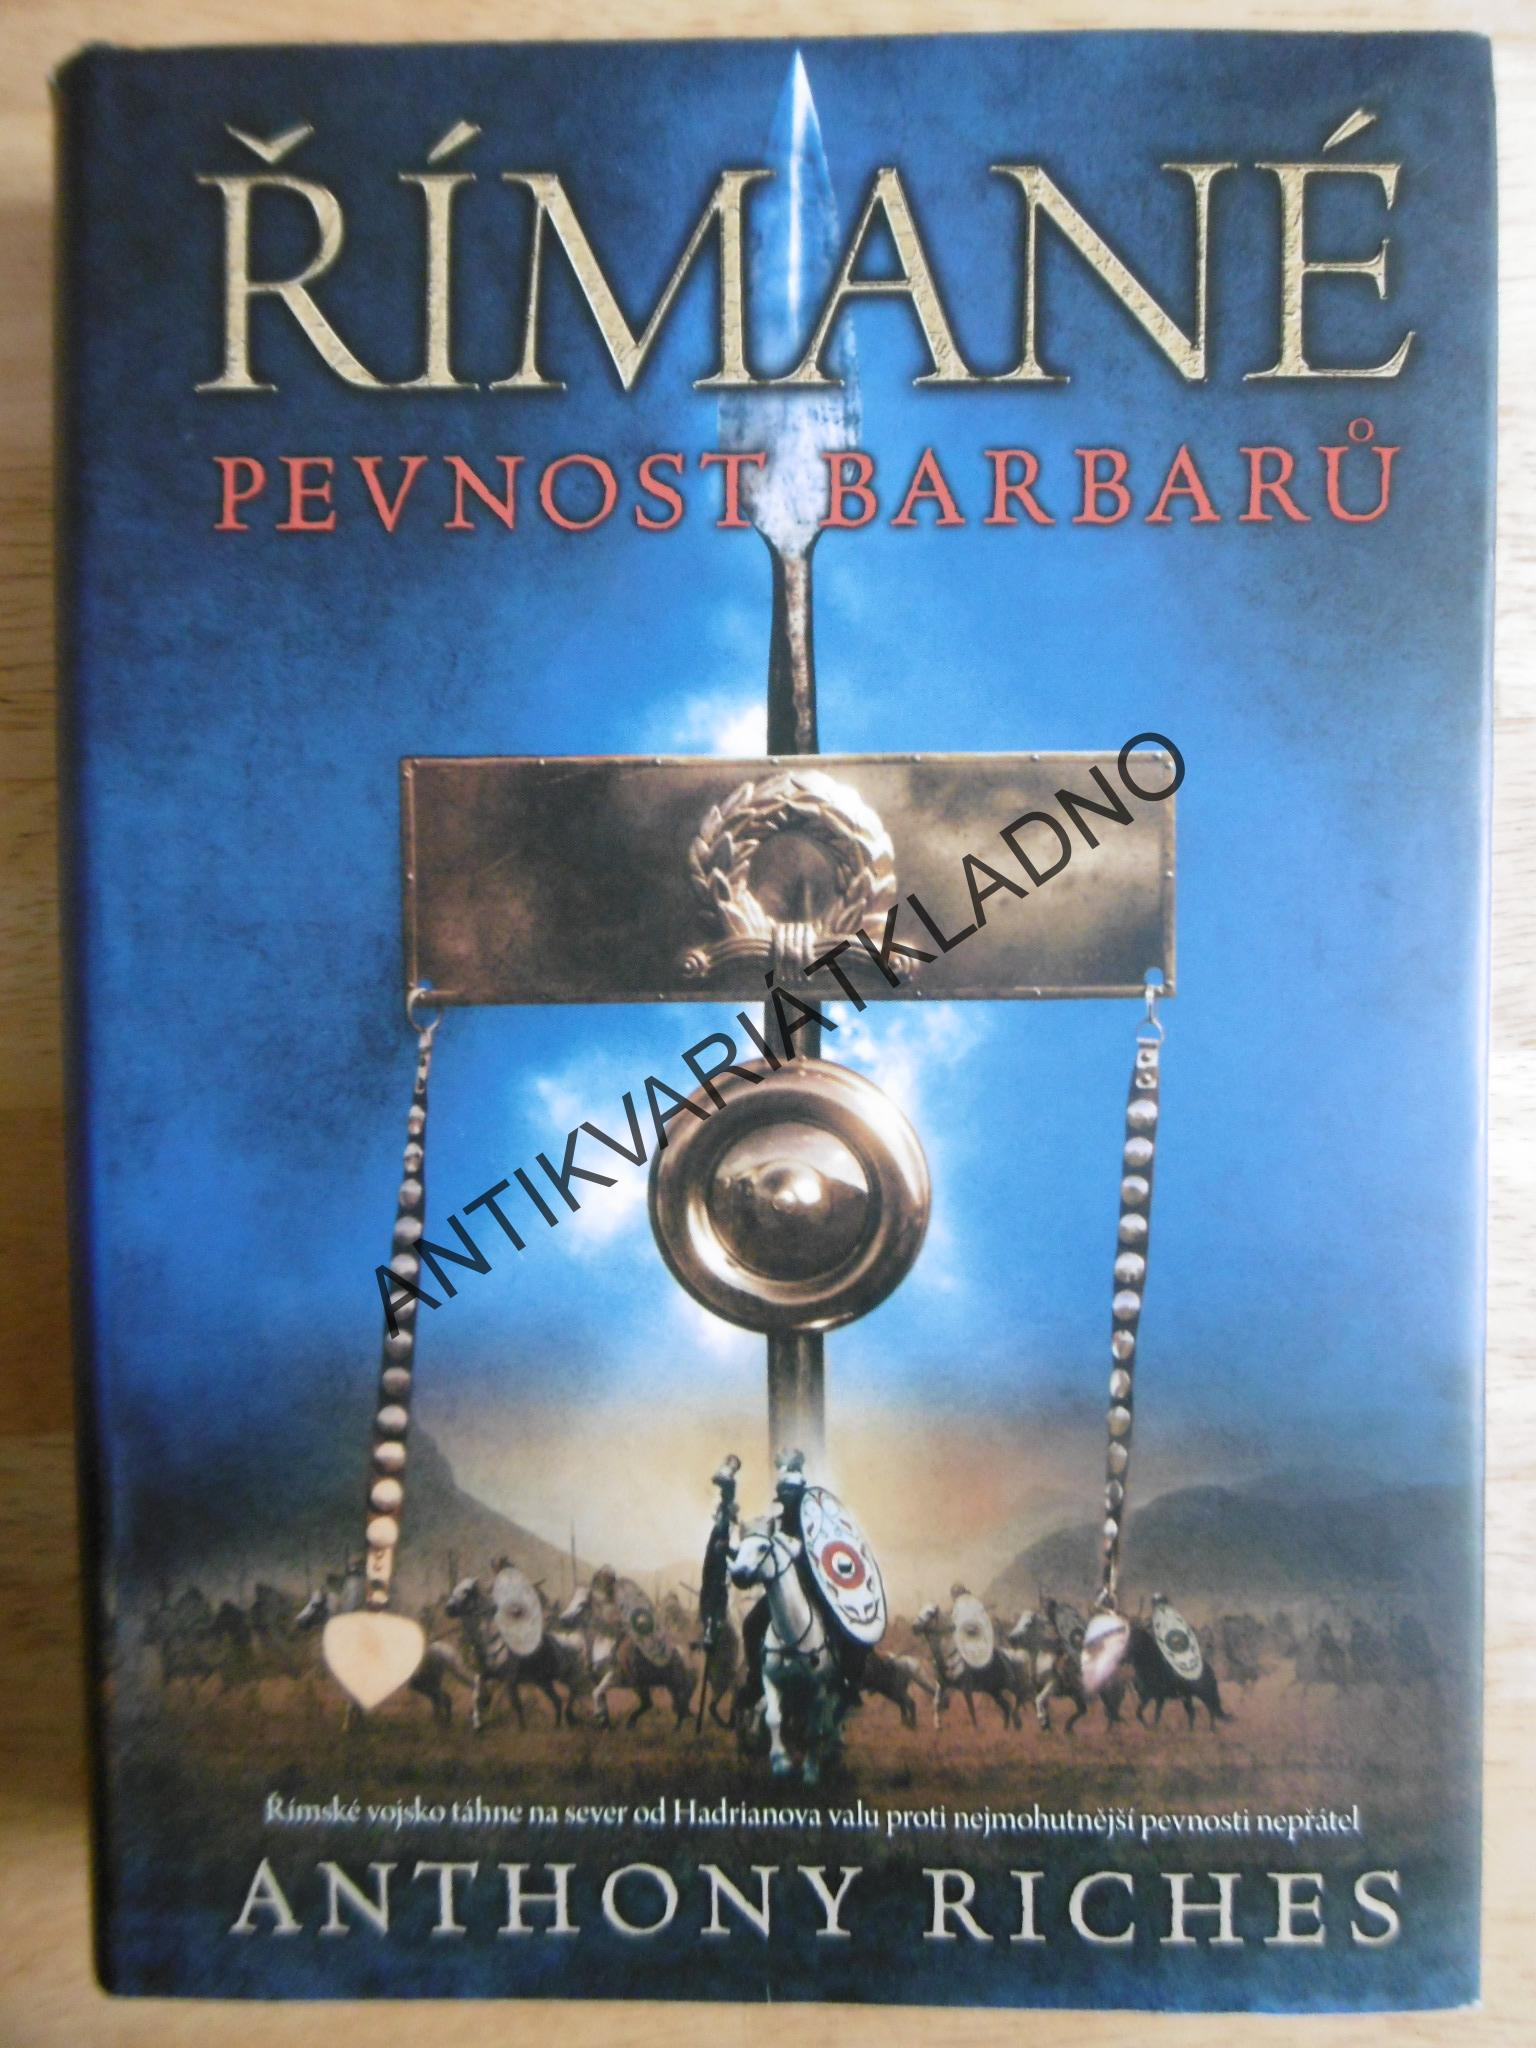 ŘÍMANÉ, PEVNOST BARBARŮ, ANTHONY RICHES, **an